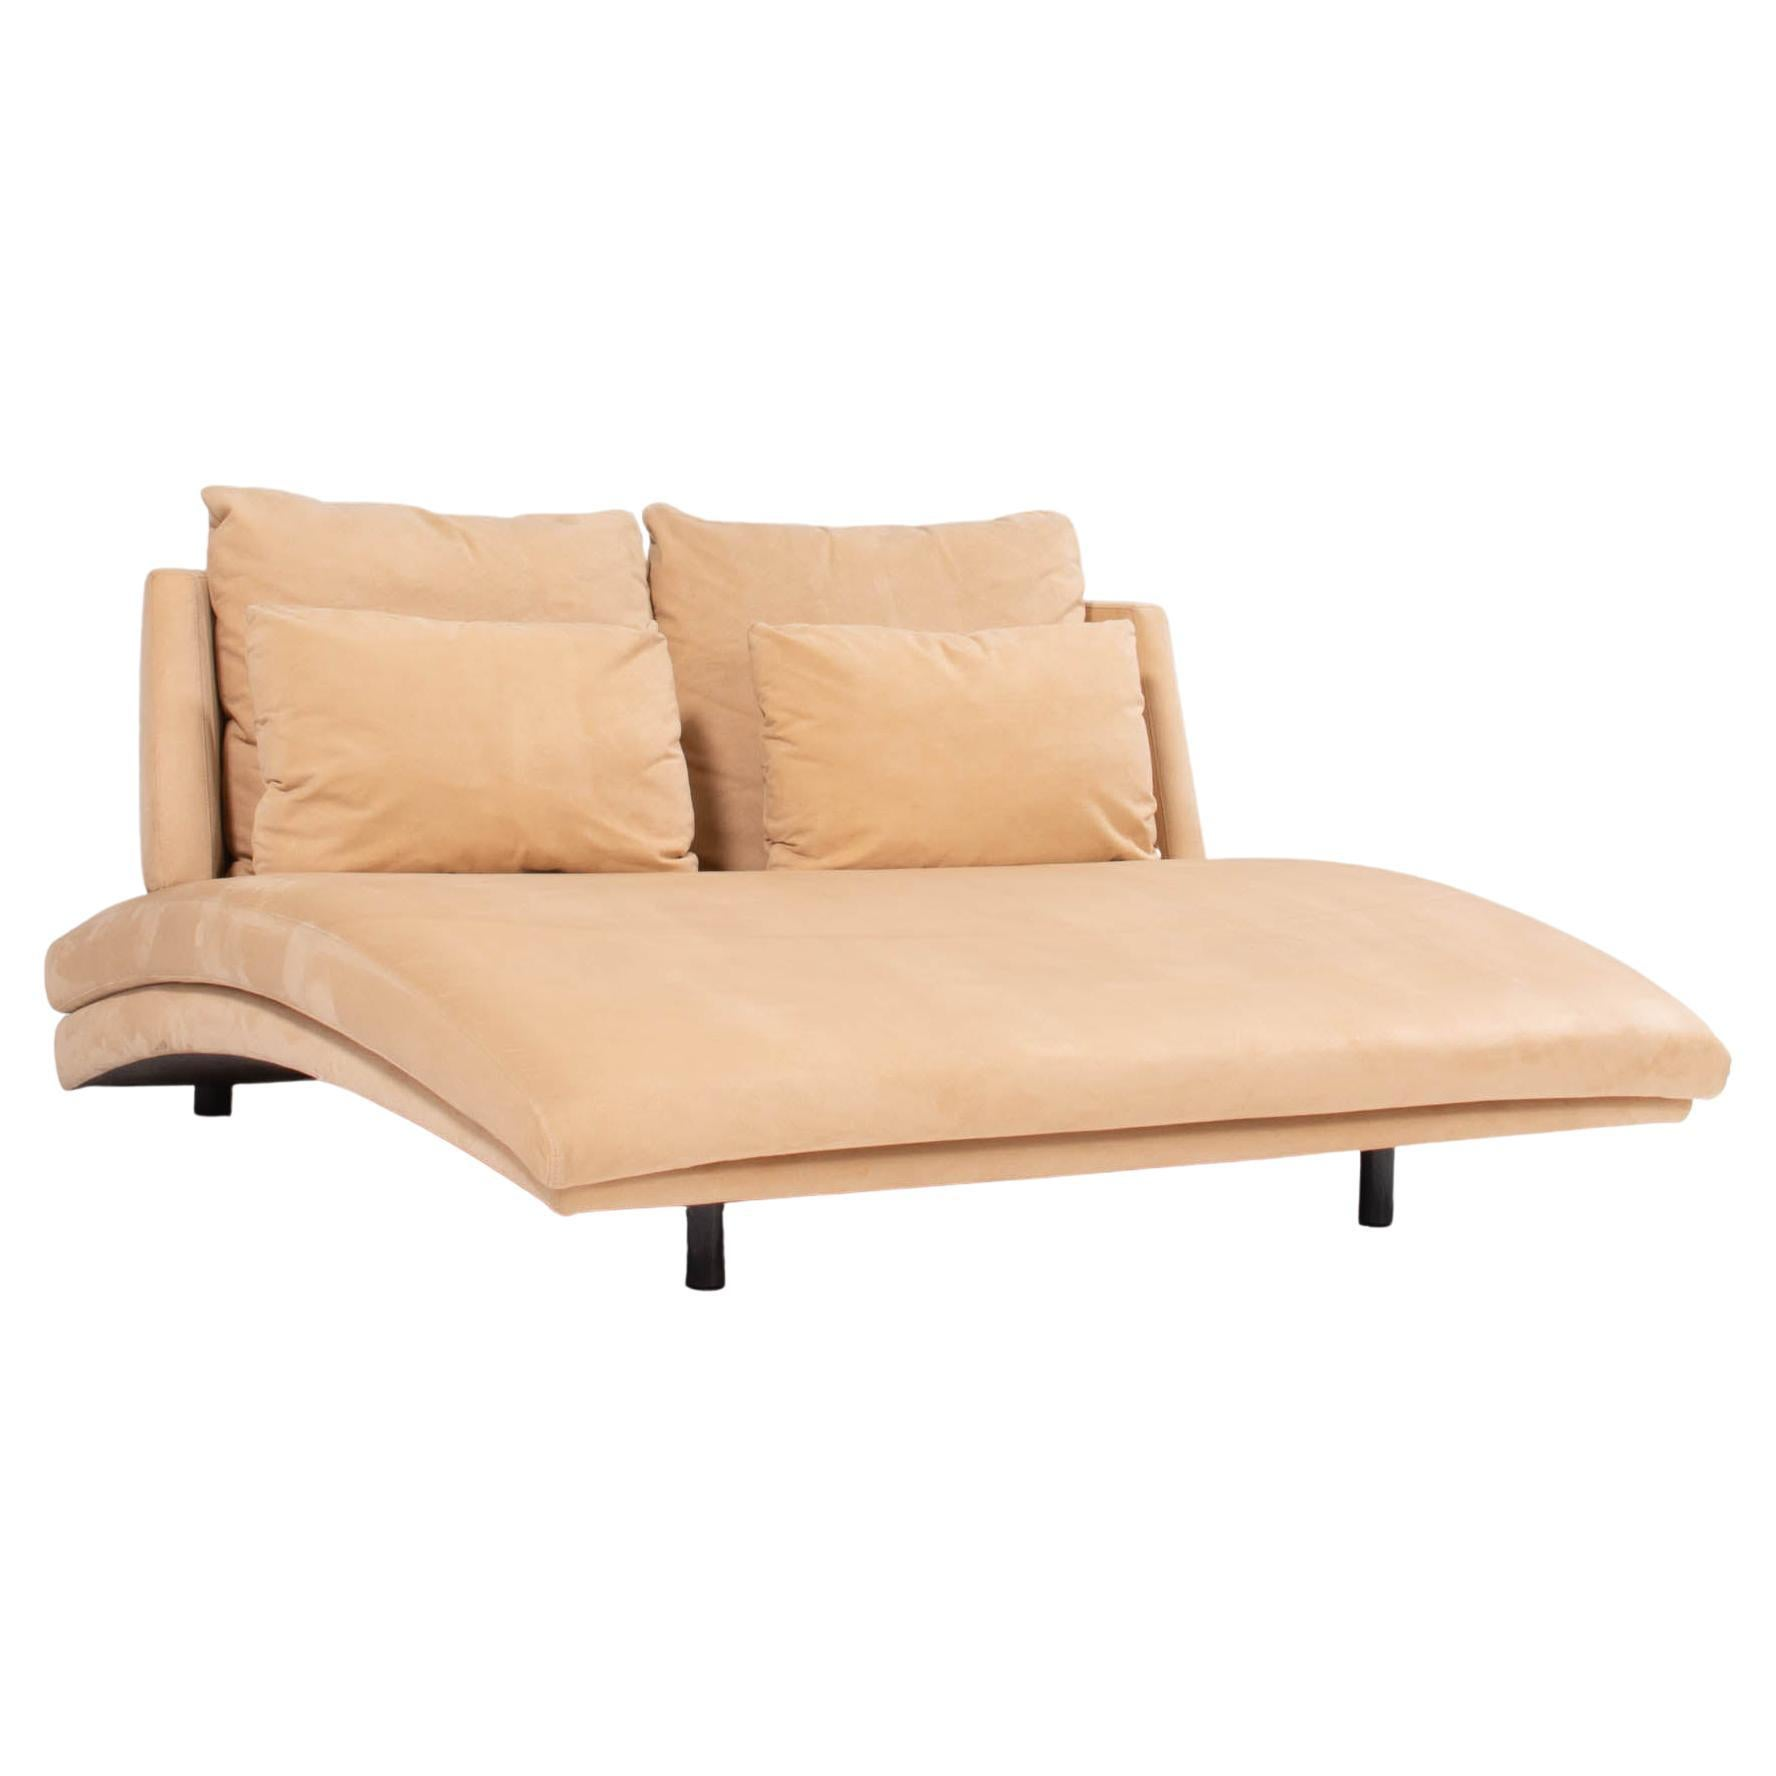 Rolf Benz 2800 Lounge Loveseat Chair